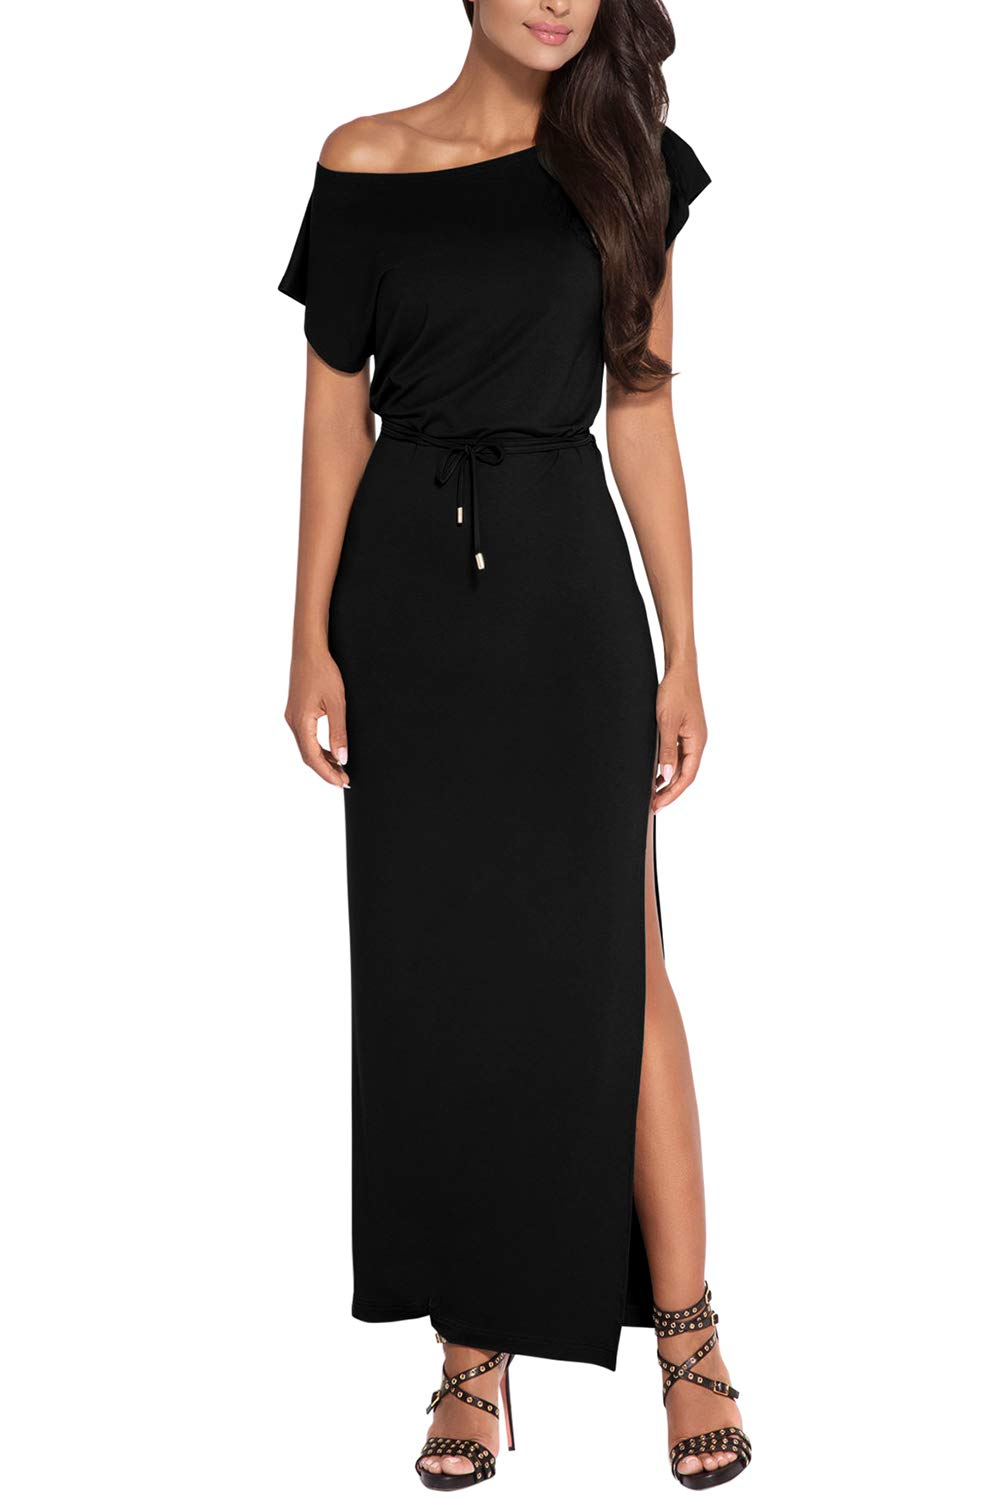 Pink Queen Women's Sexy High Slit One Off Shoulder Party Cocktail Dress